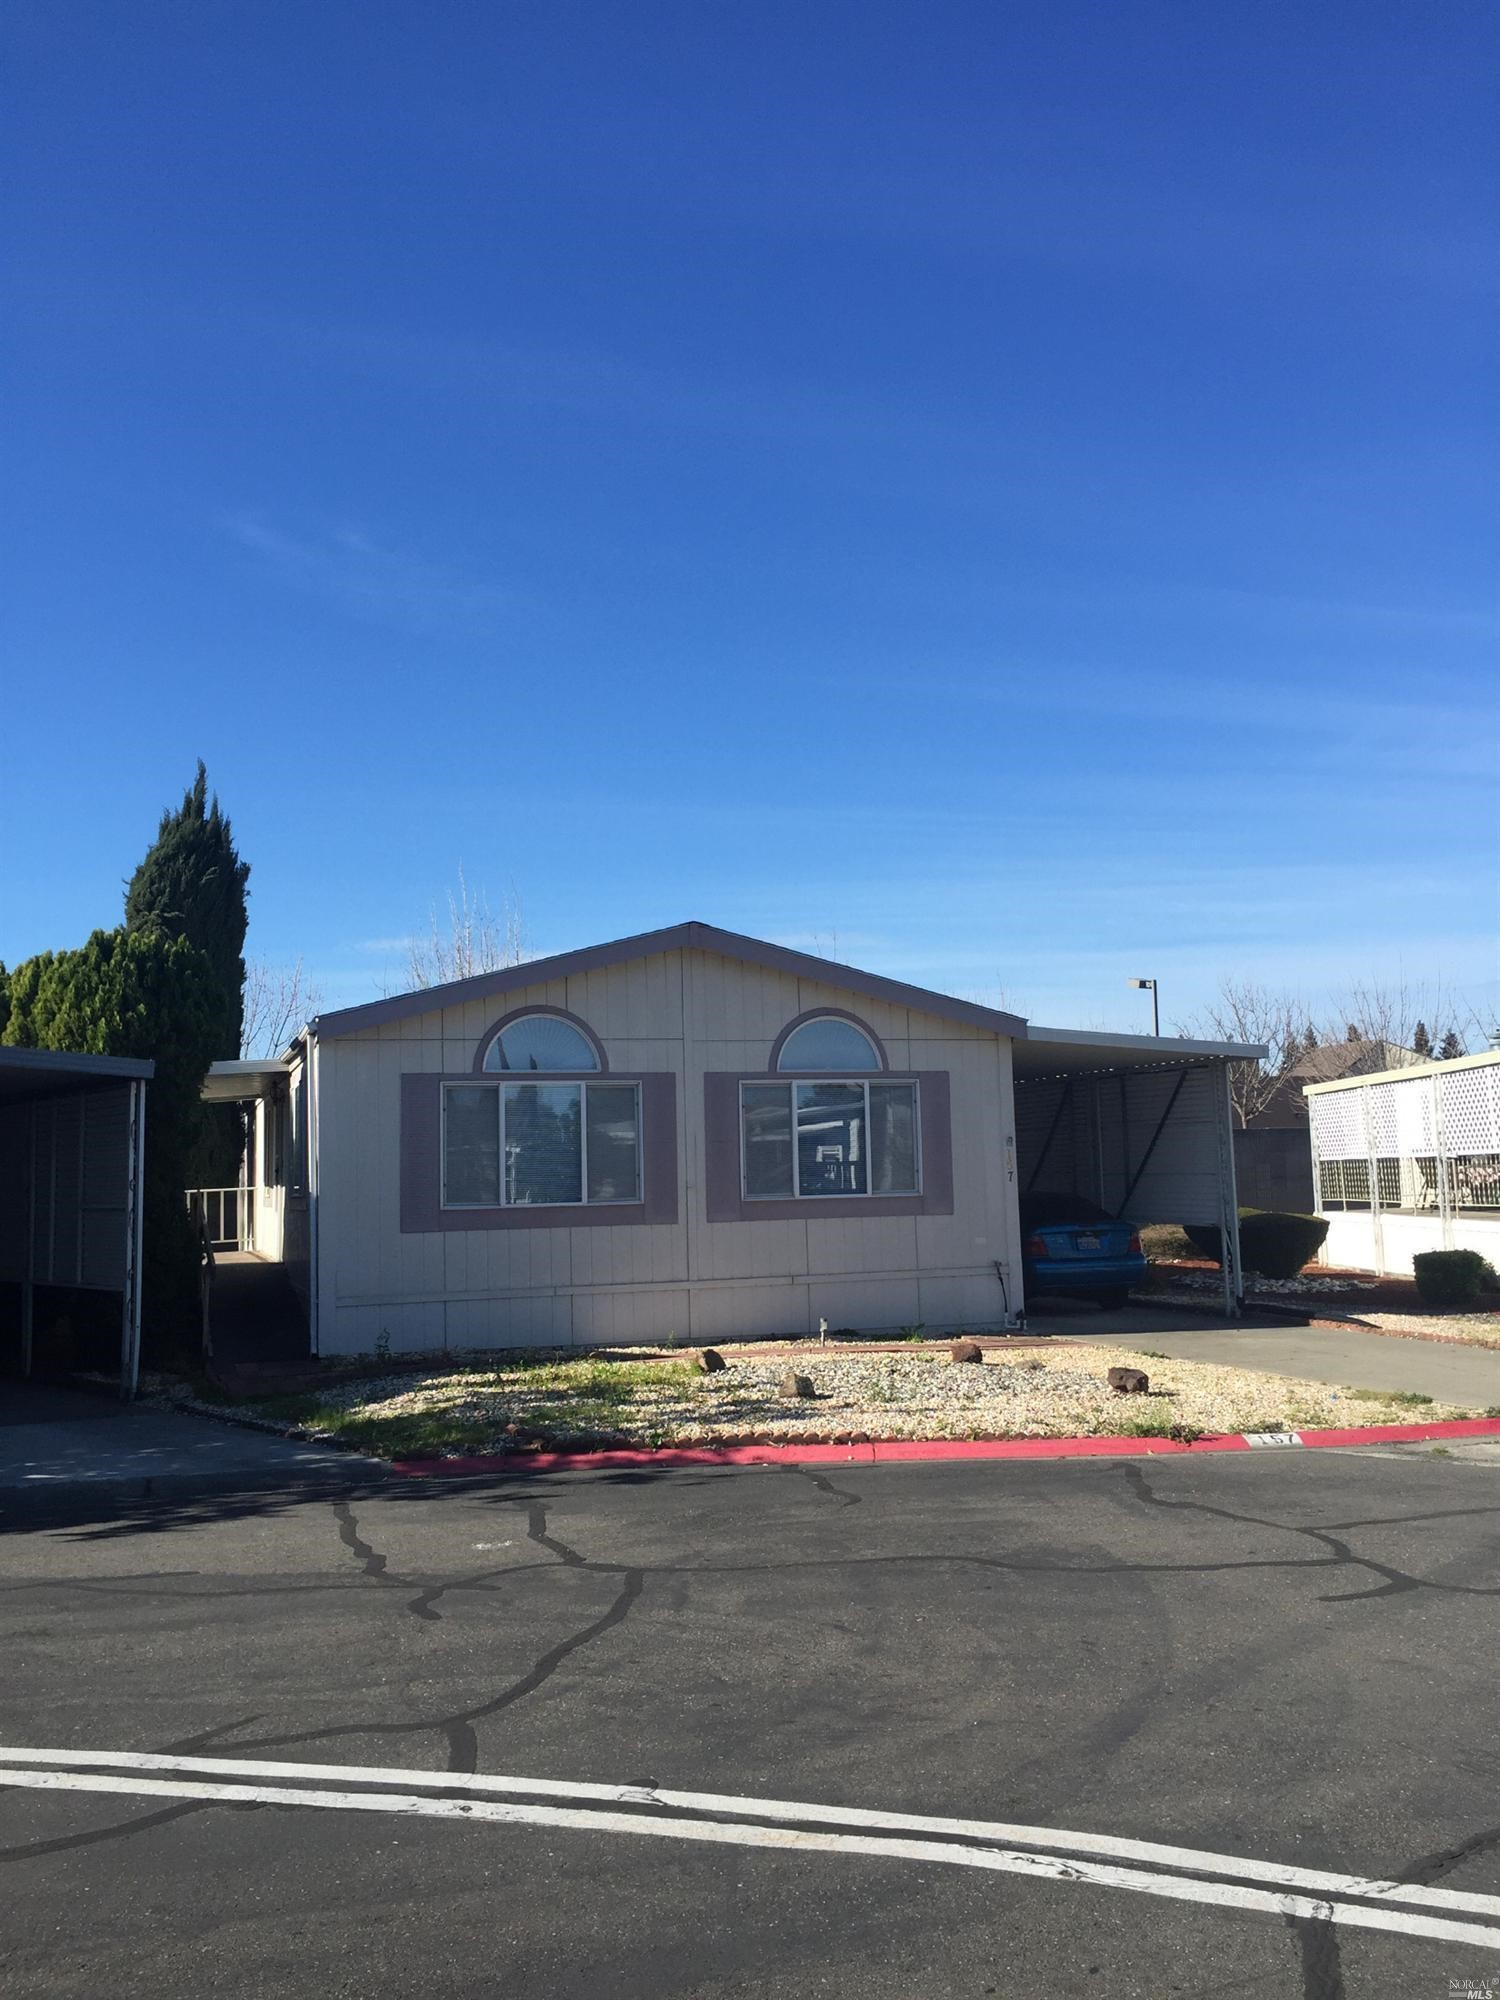 vacaville mobile homes for sale with Pid 10756783 on Everardo Valadez Vacaville CA 311978 026989618 additionally 399501994 Monaco Crown Royale 40 Signature Series 19043409 likewise 2501889 furthermore Luxury further Pid 18574505.